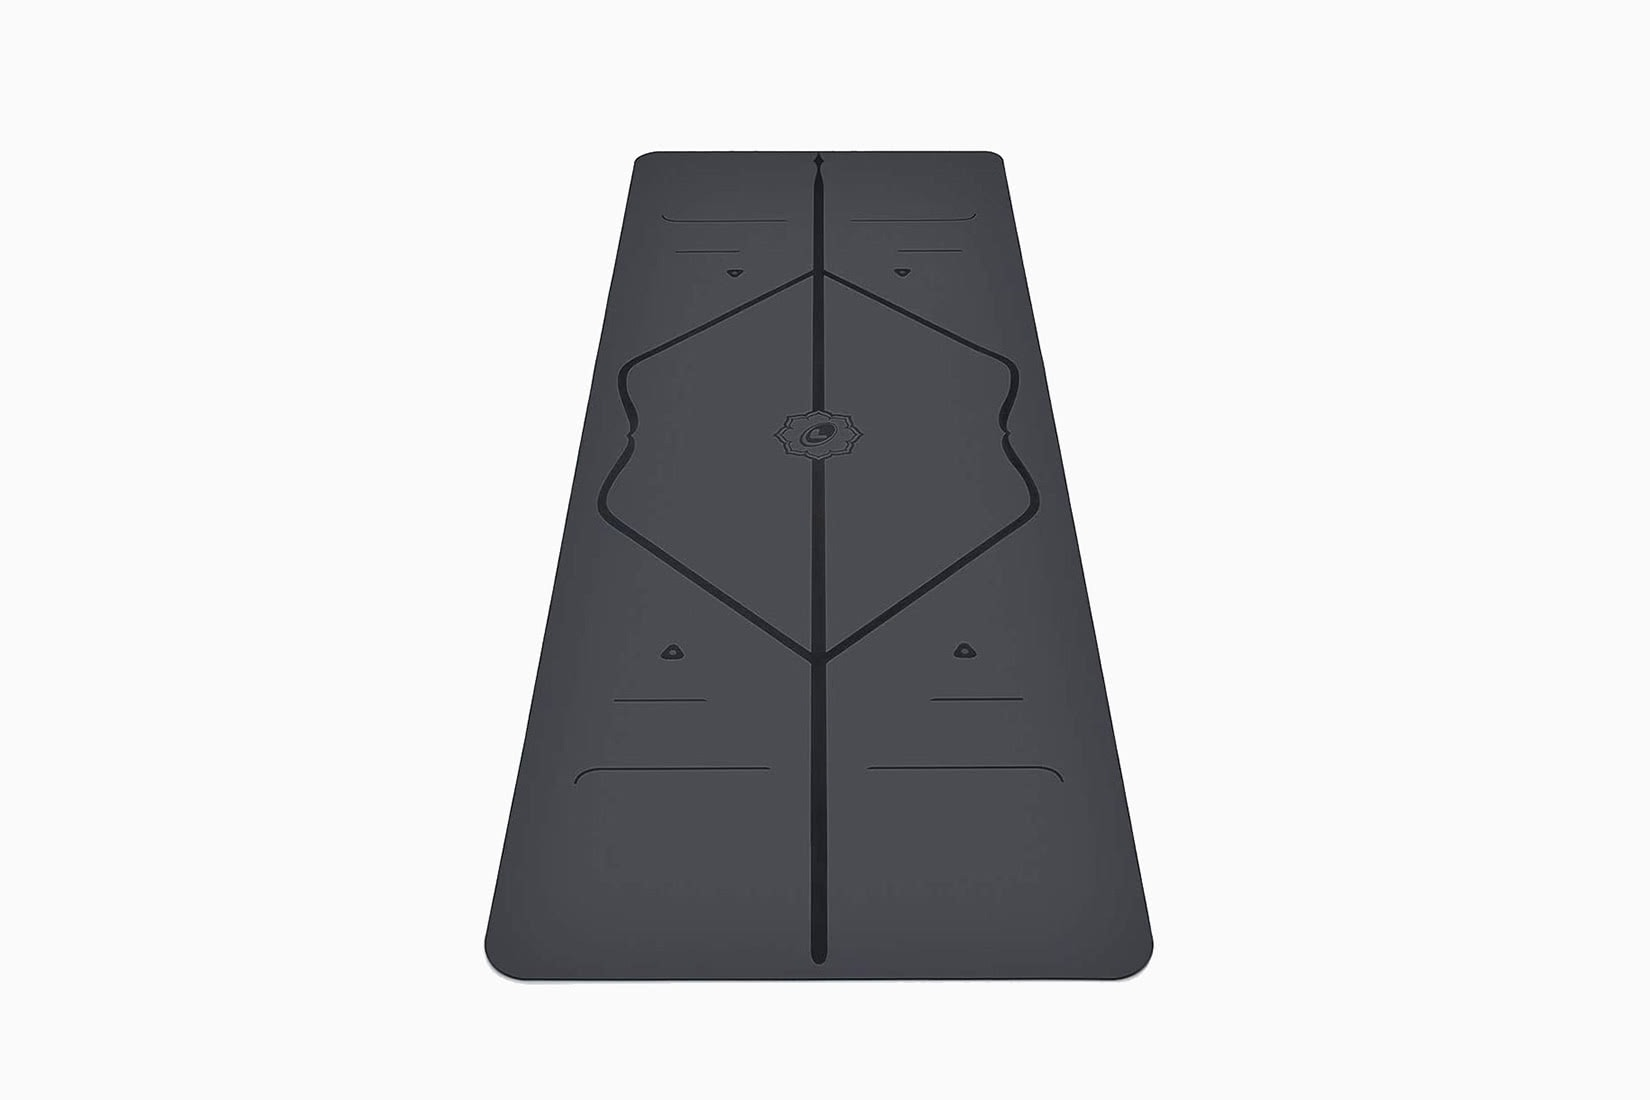 best yoga exercise mat alignment lines Liforme review - Luxe Digital